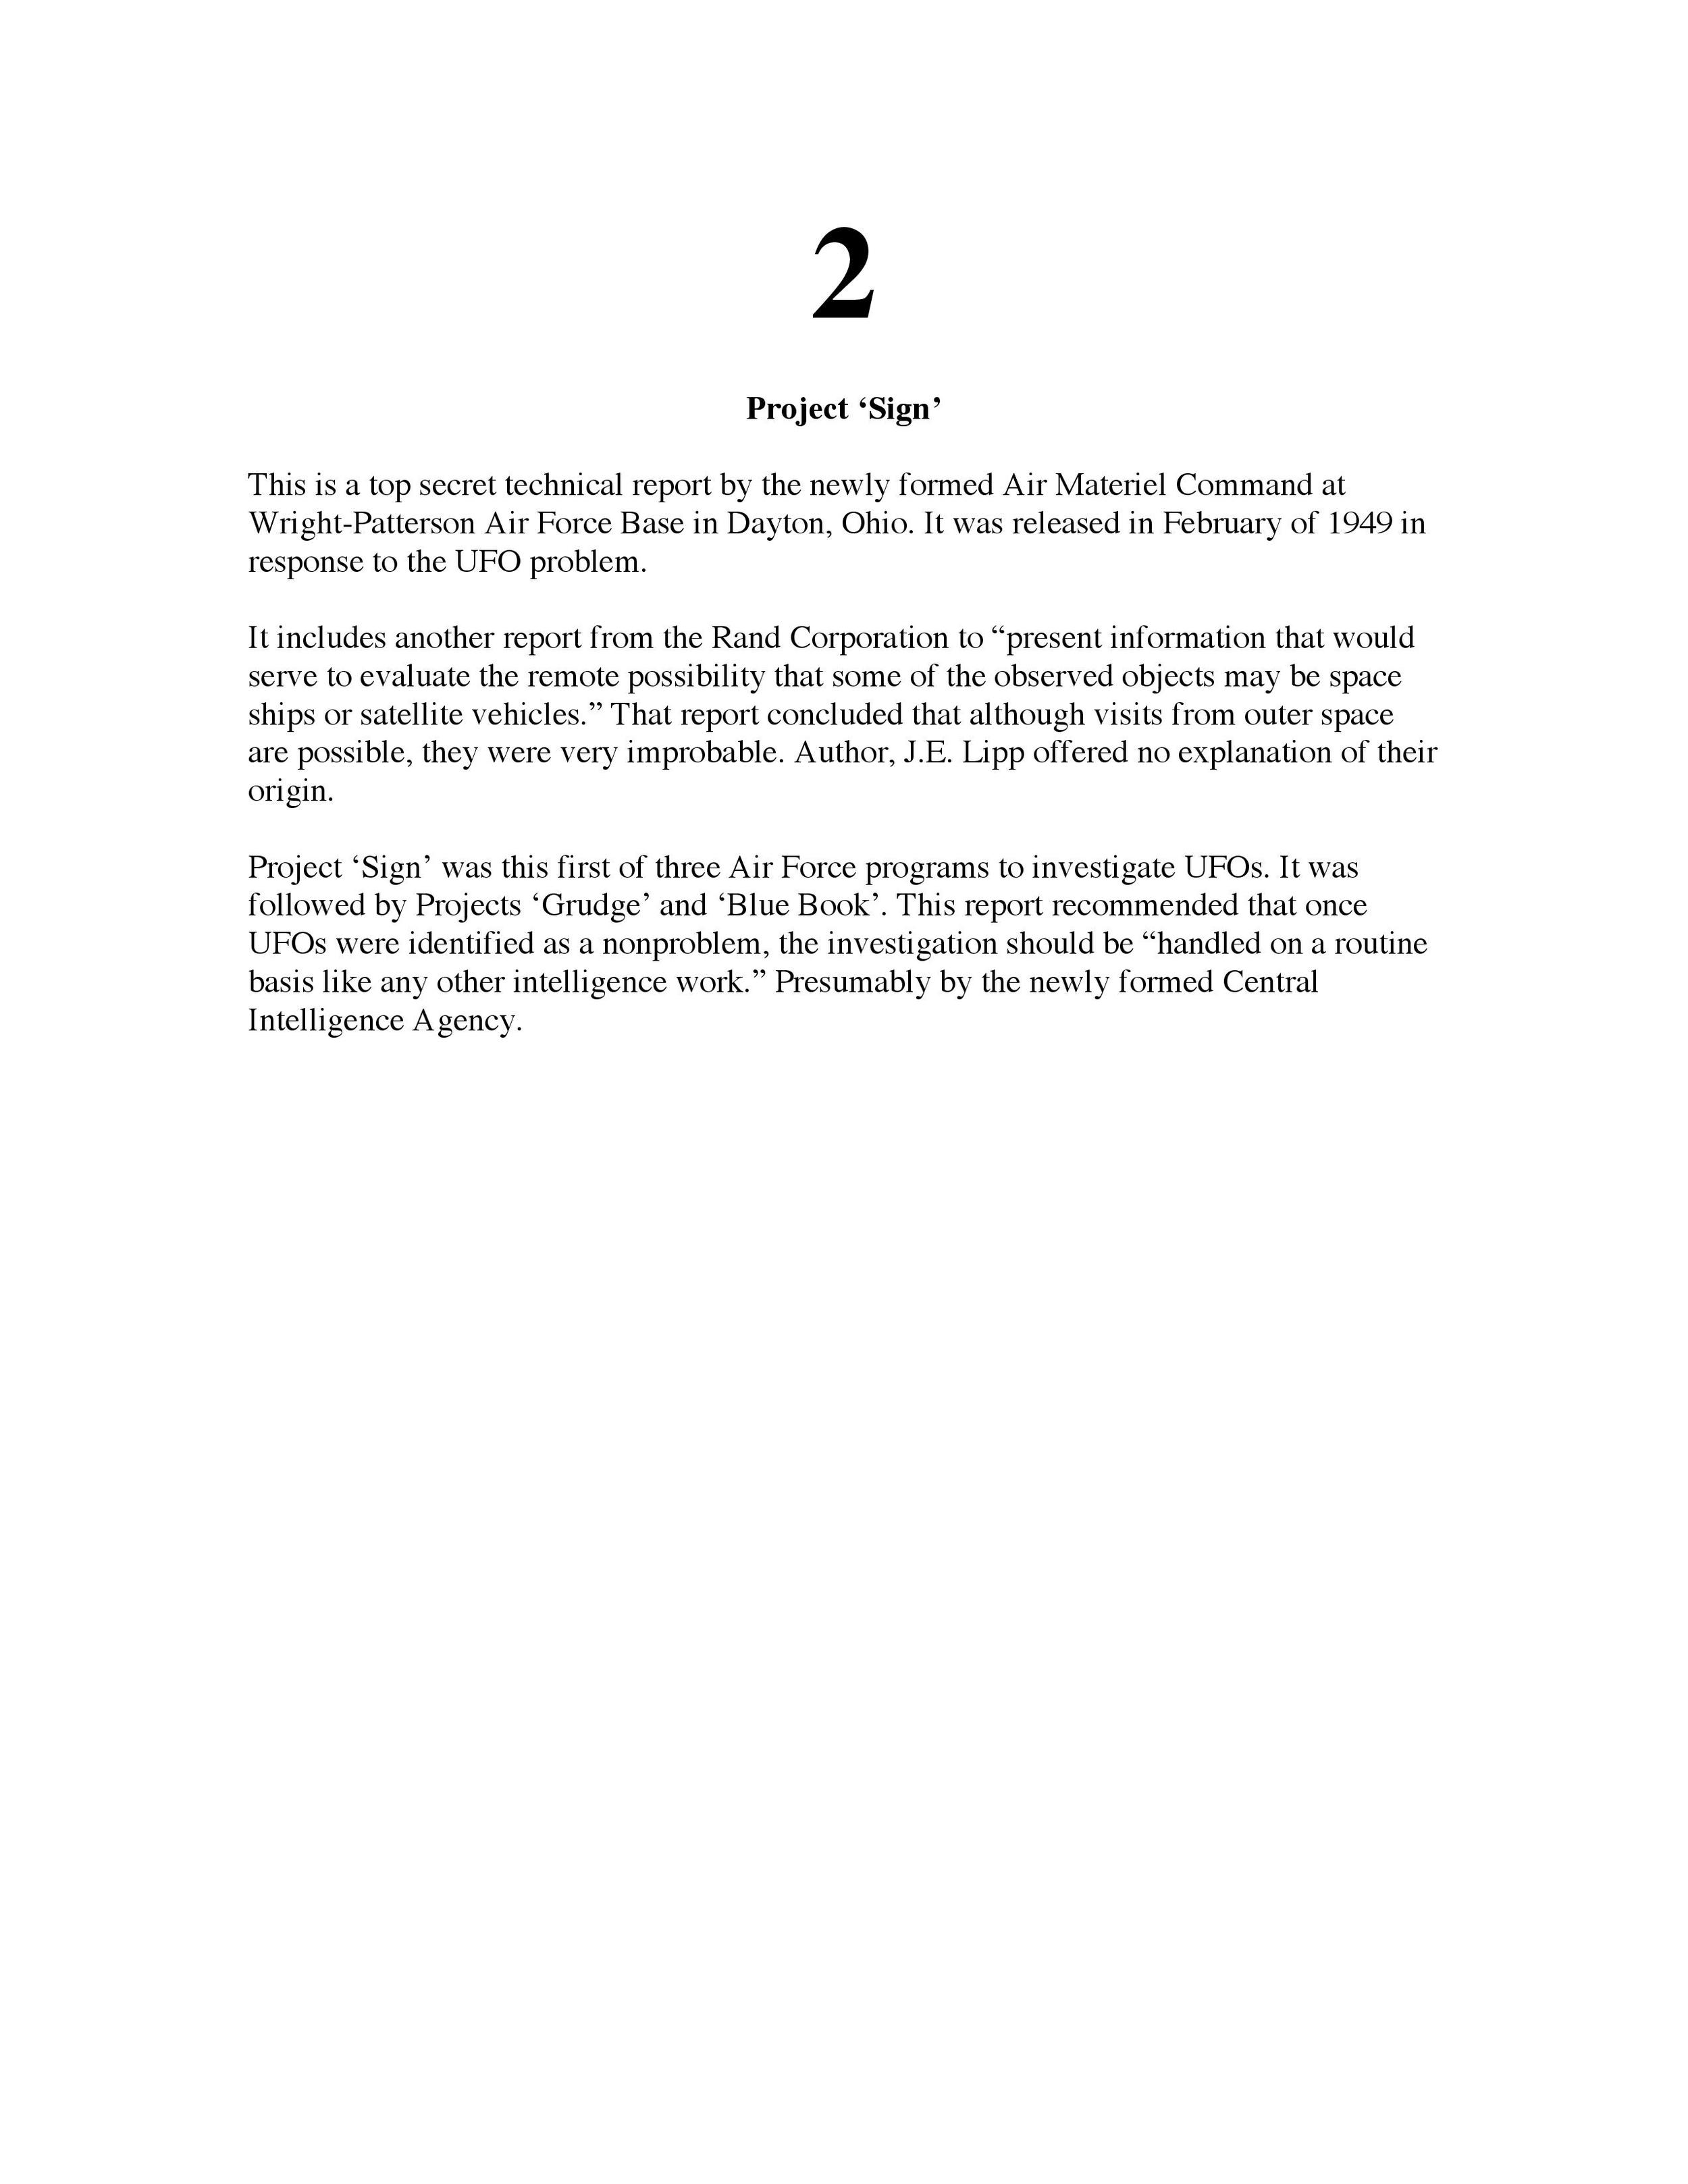 2-A-page-001.jpg